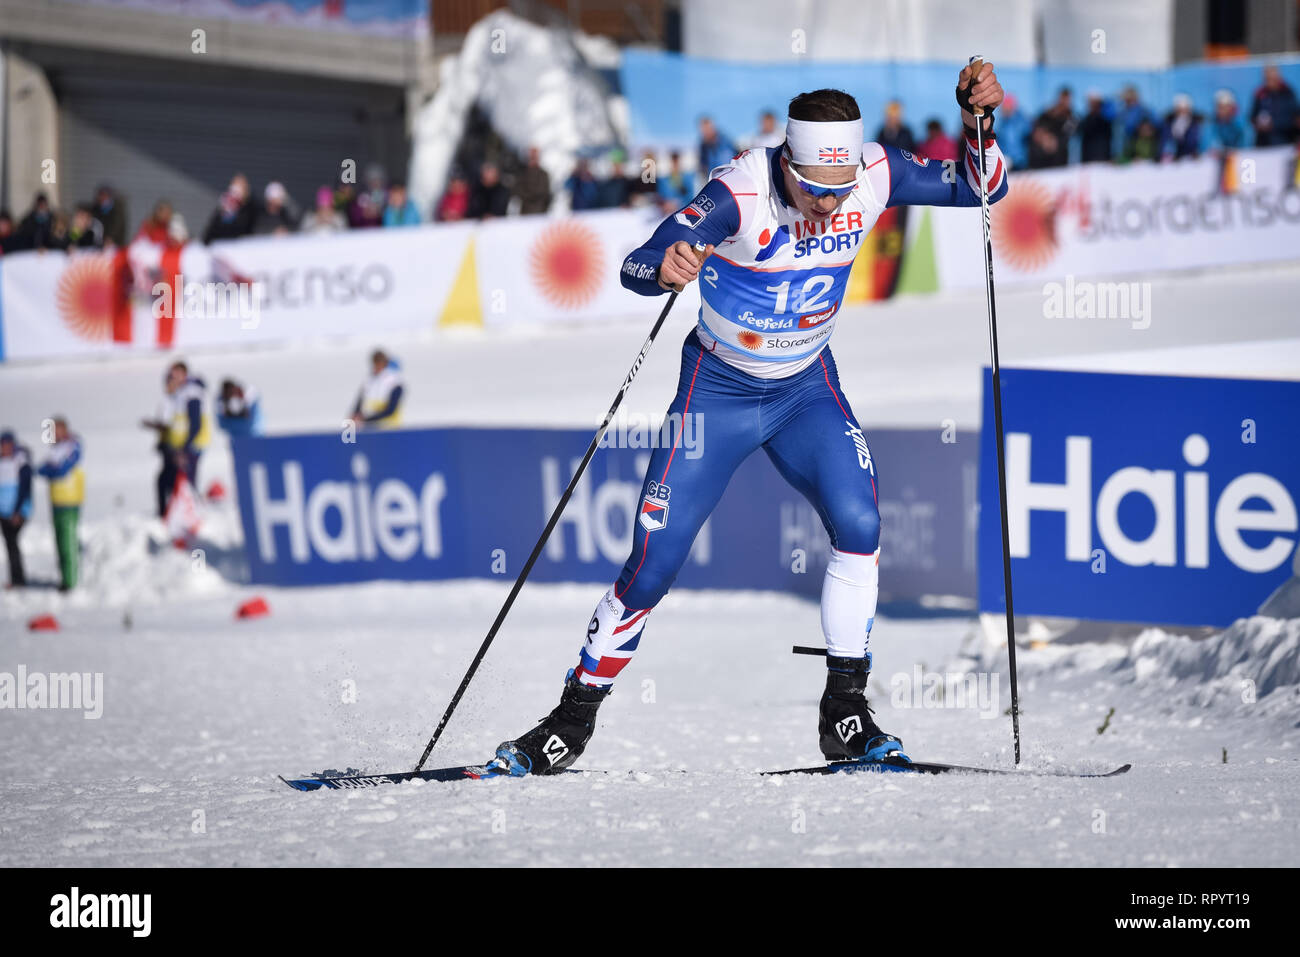 Seefeld, Austria. 23rd Feb, 2019. Andrew Musgrave (#12) of Great Britain en route to a 7th place finish in the nordic world ski championship skiathlon event. Credit: John Lazenby/Alamy Live News - Stock Image